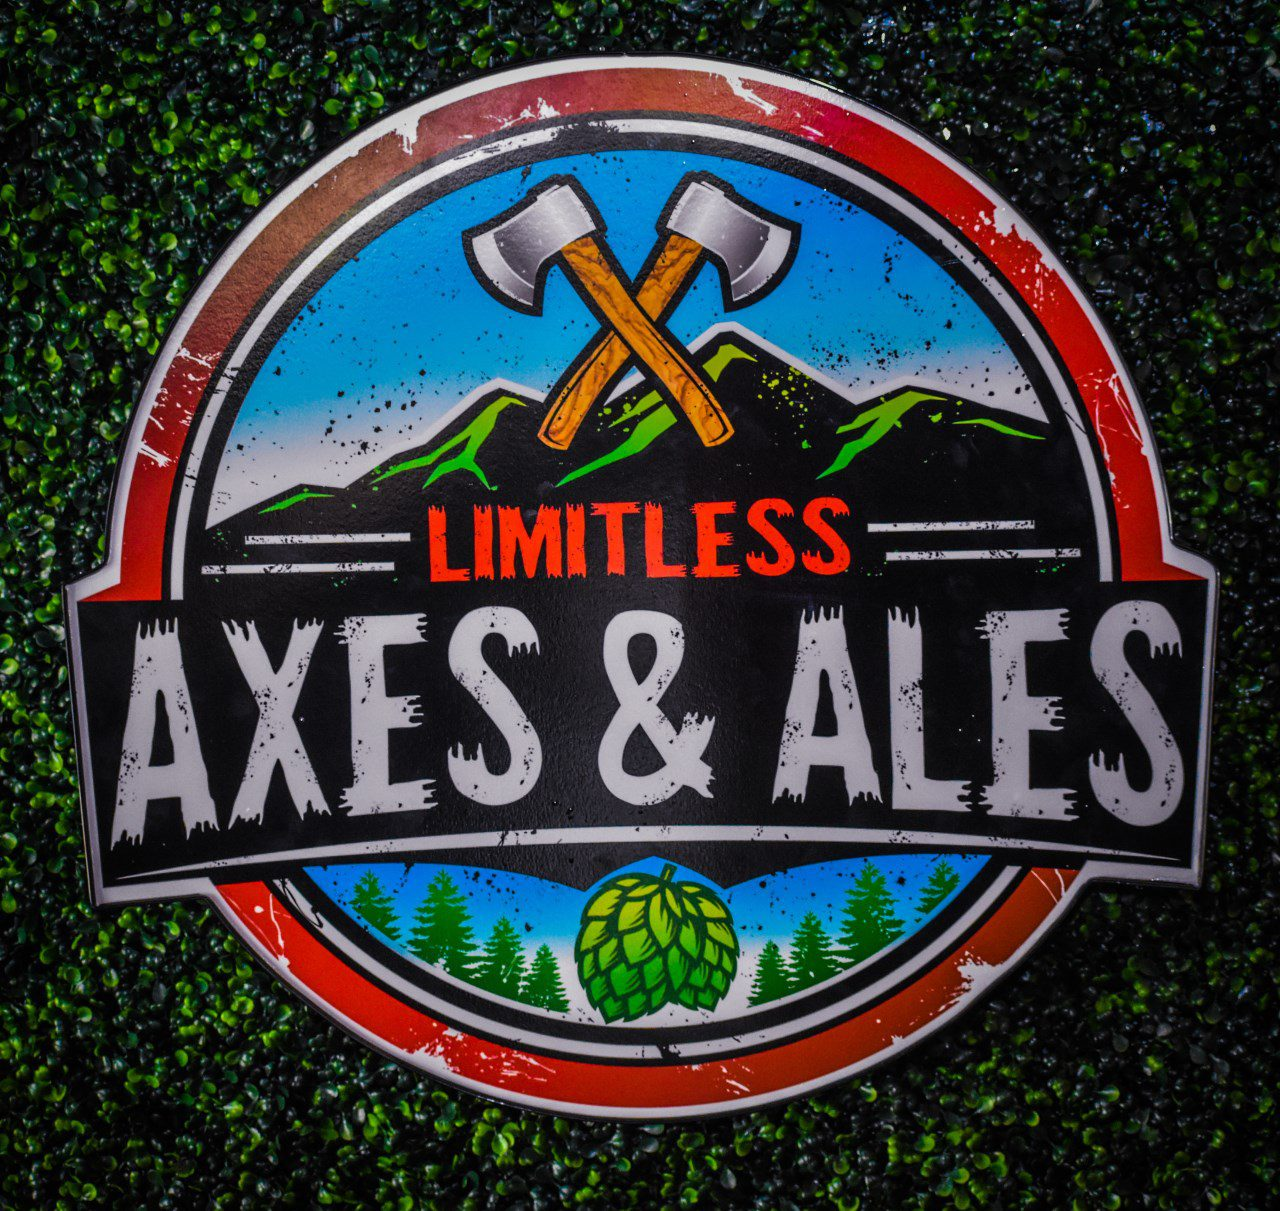 limitless axes and ales on faux grass